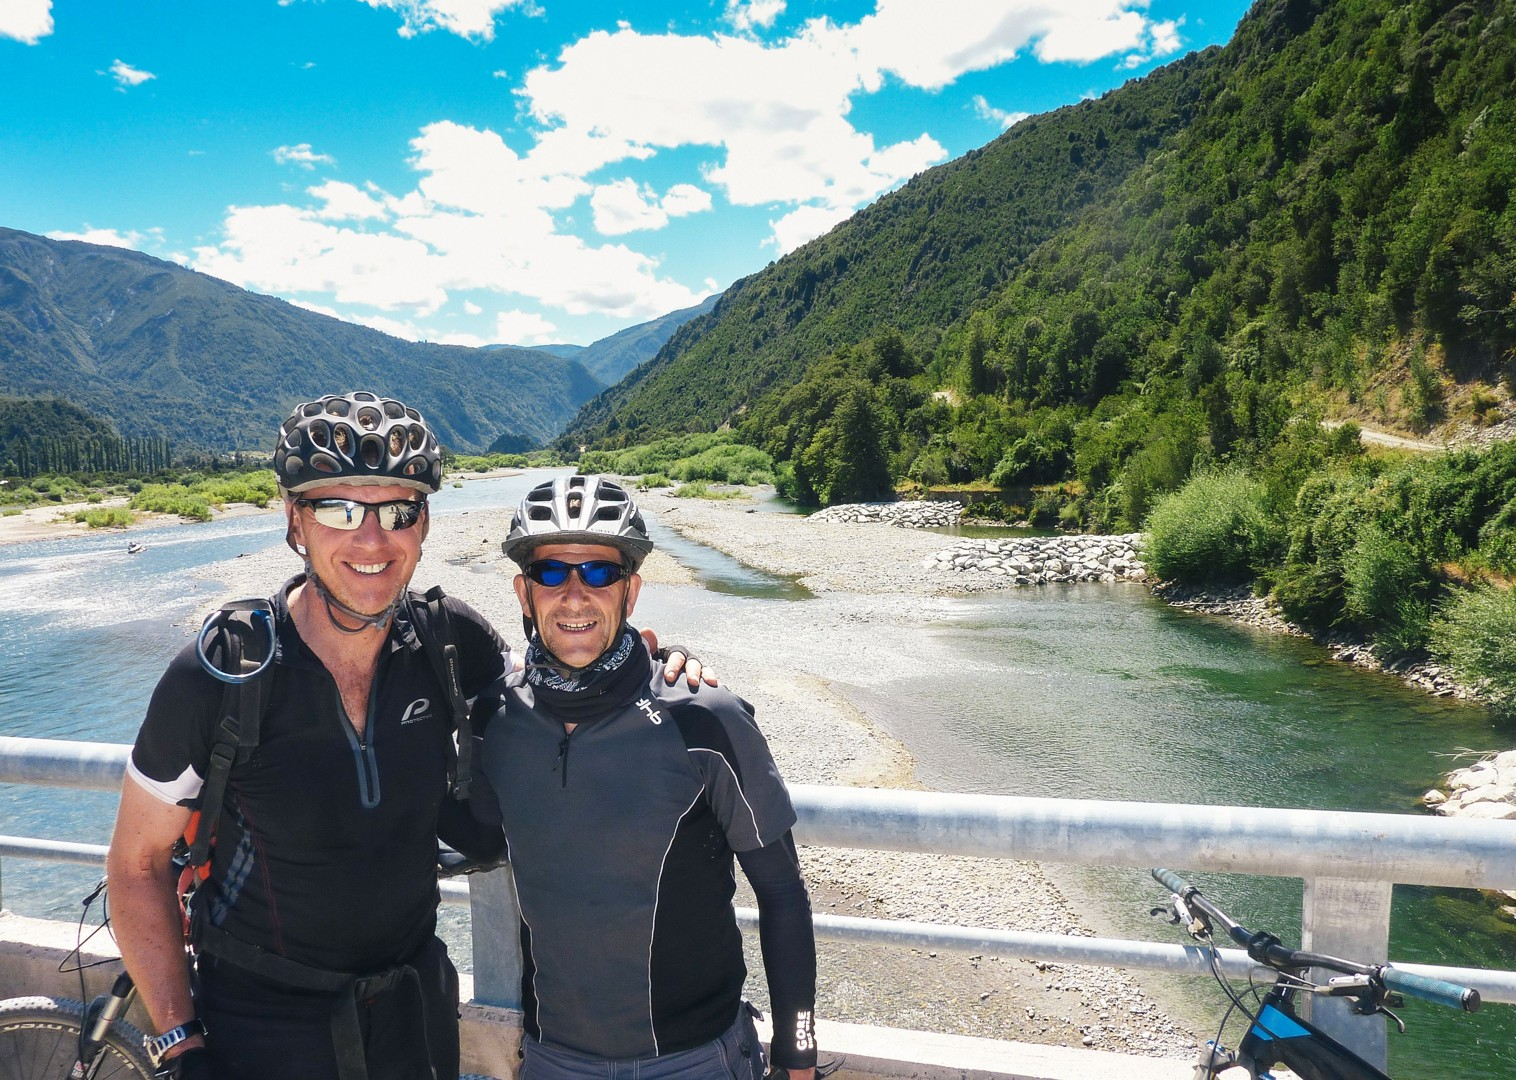 BEST-42.JPG - Chile and Argentina - Wild Patagonia - Guided Mountain Bike Holiday - Mountain Biking